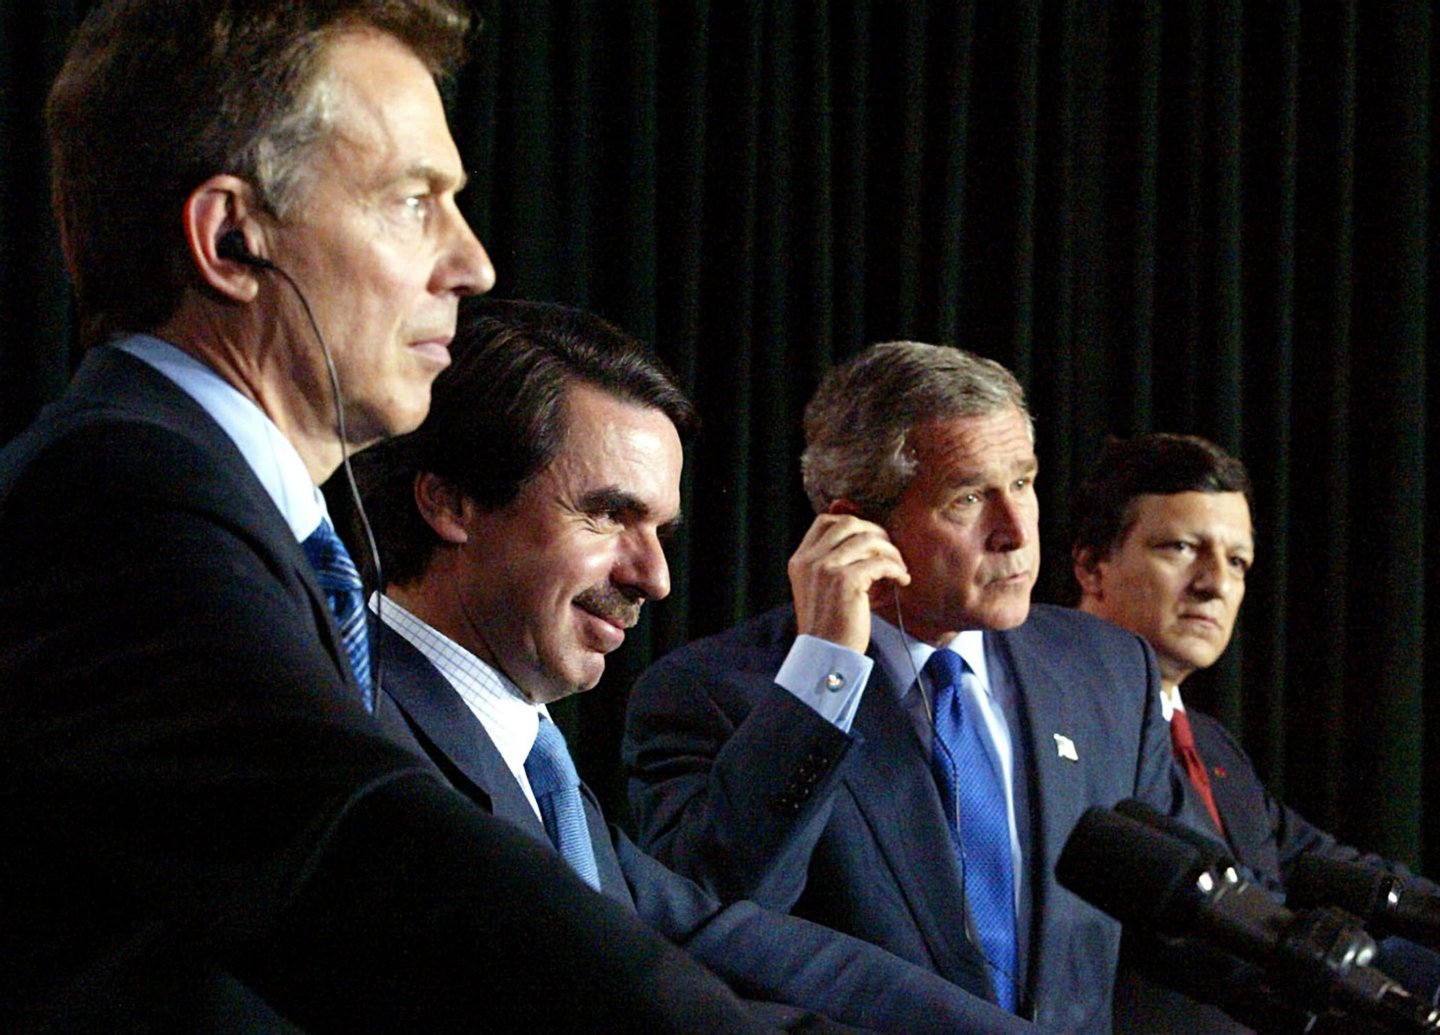 (L-R) Britain's Prime Minister Tony Blair, Spanish Prime Minister Jose Maria Aznar, US President George W. Bush and Portuguese Prime Minister Jose Manuel Durao Barosso listen at their joint press conference following meetings to discuss prospects for resolving the Iraq situation peacefully with diplomacy in final pursuit of a United Nations resolution 16 March, 2003, at Lajes Field on the island of Terceira in the Azores, Portugal. The four leaders, all facing anti-war opposition of varying degrees at home are the sponsors of a UN resolution that would set the stage for war on Iraq. (Photo by Luke FRAZZA/AFP/Getty Images)